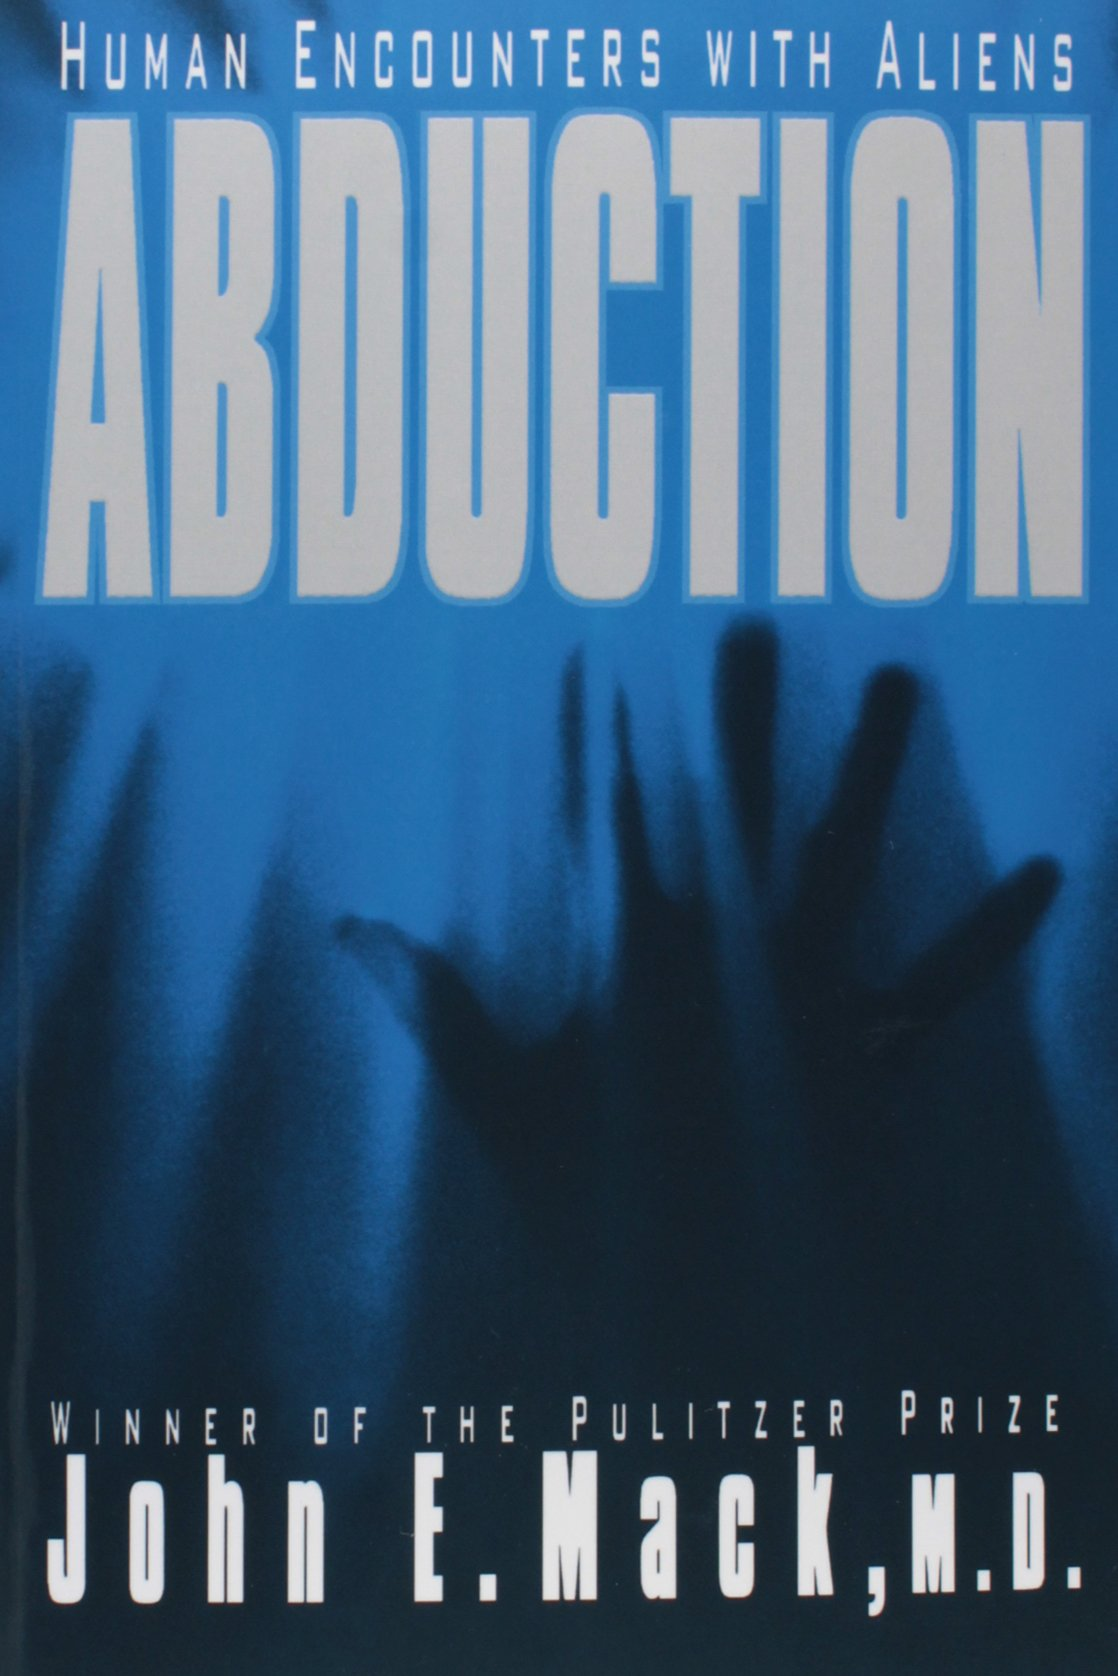 'Abduction' by John E. Mack